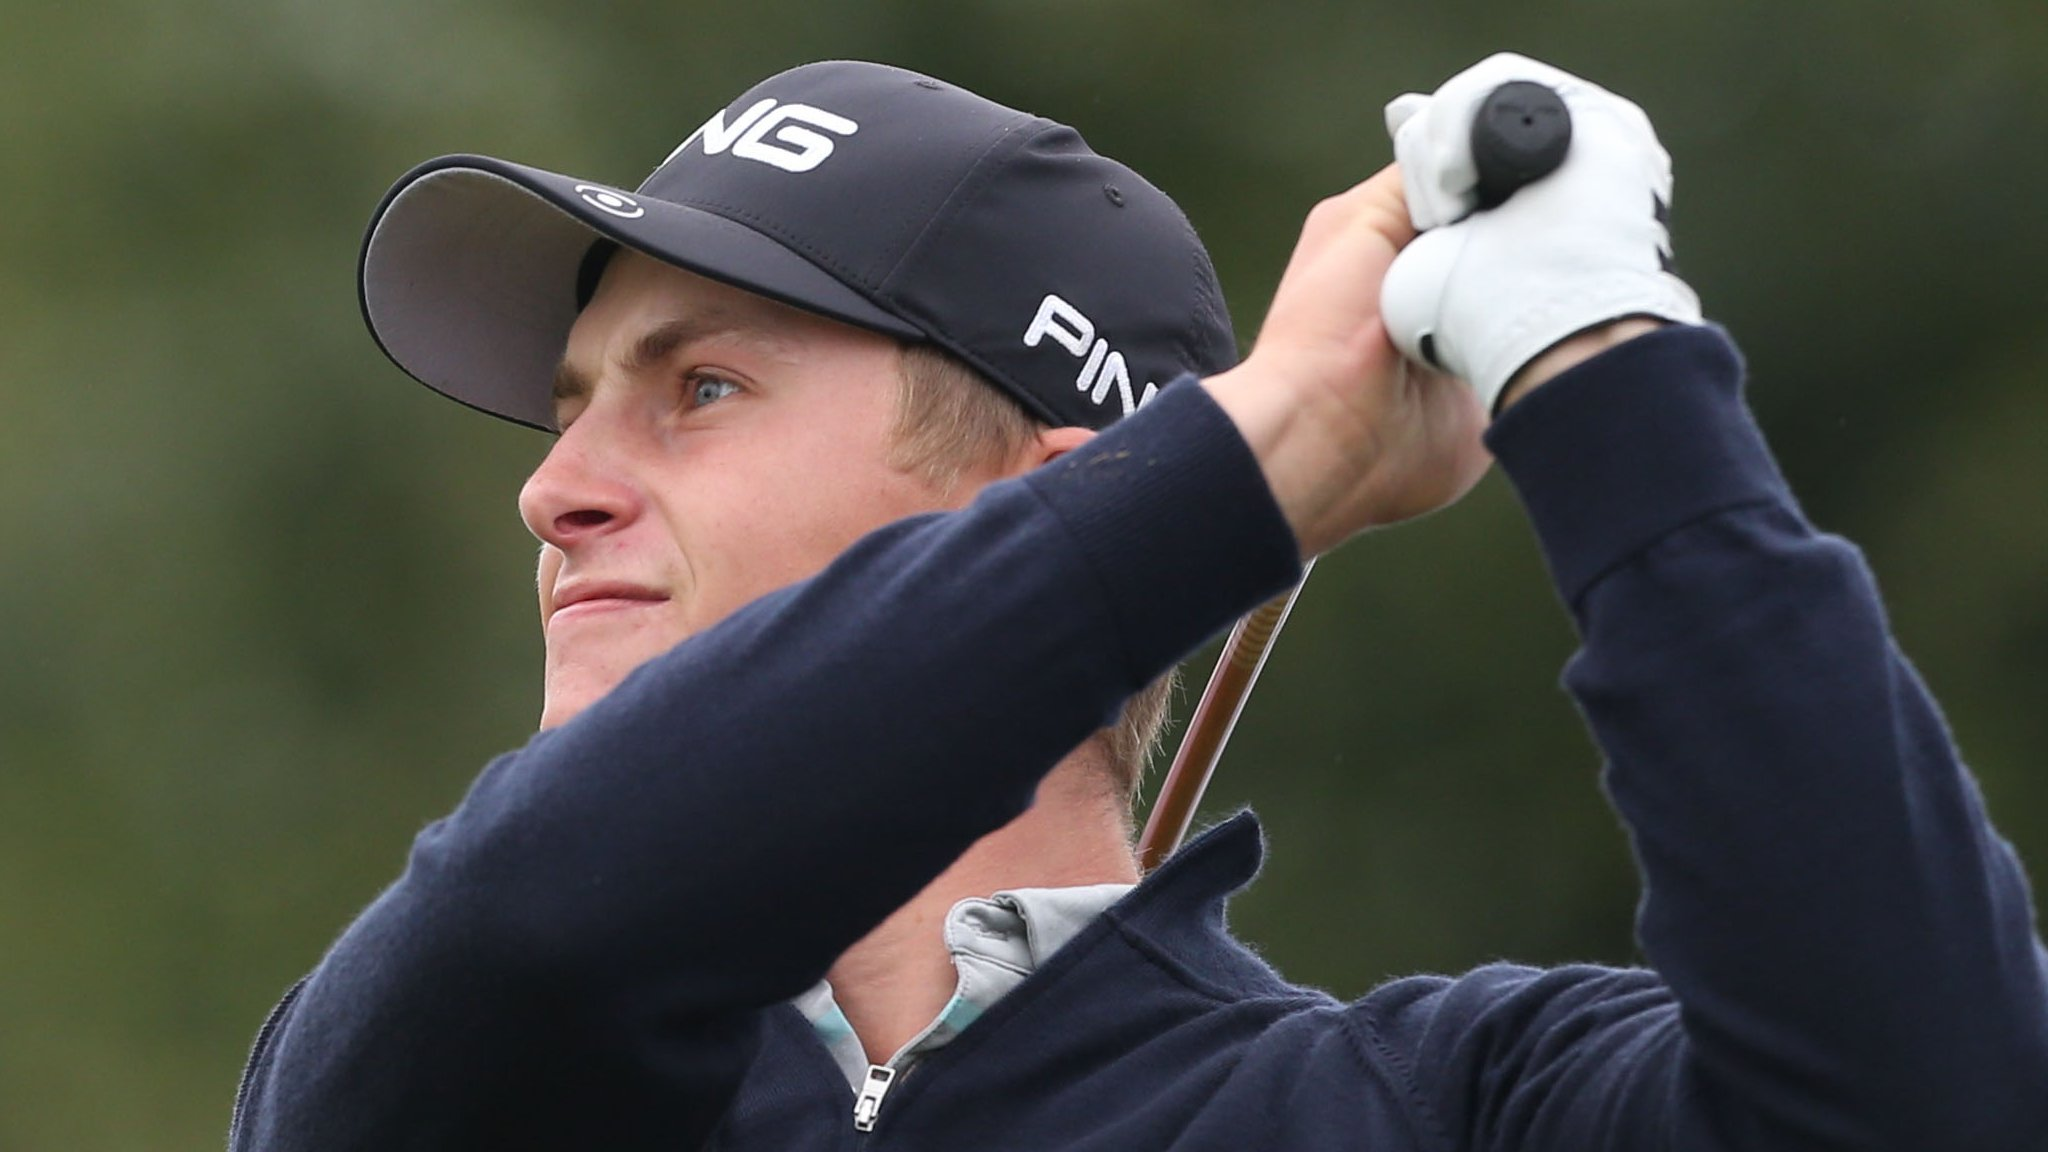 Hill takes dramatic victory at NI Open